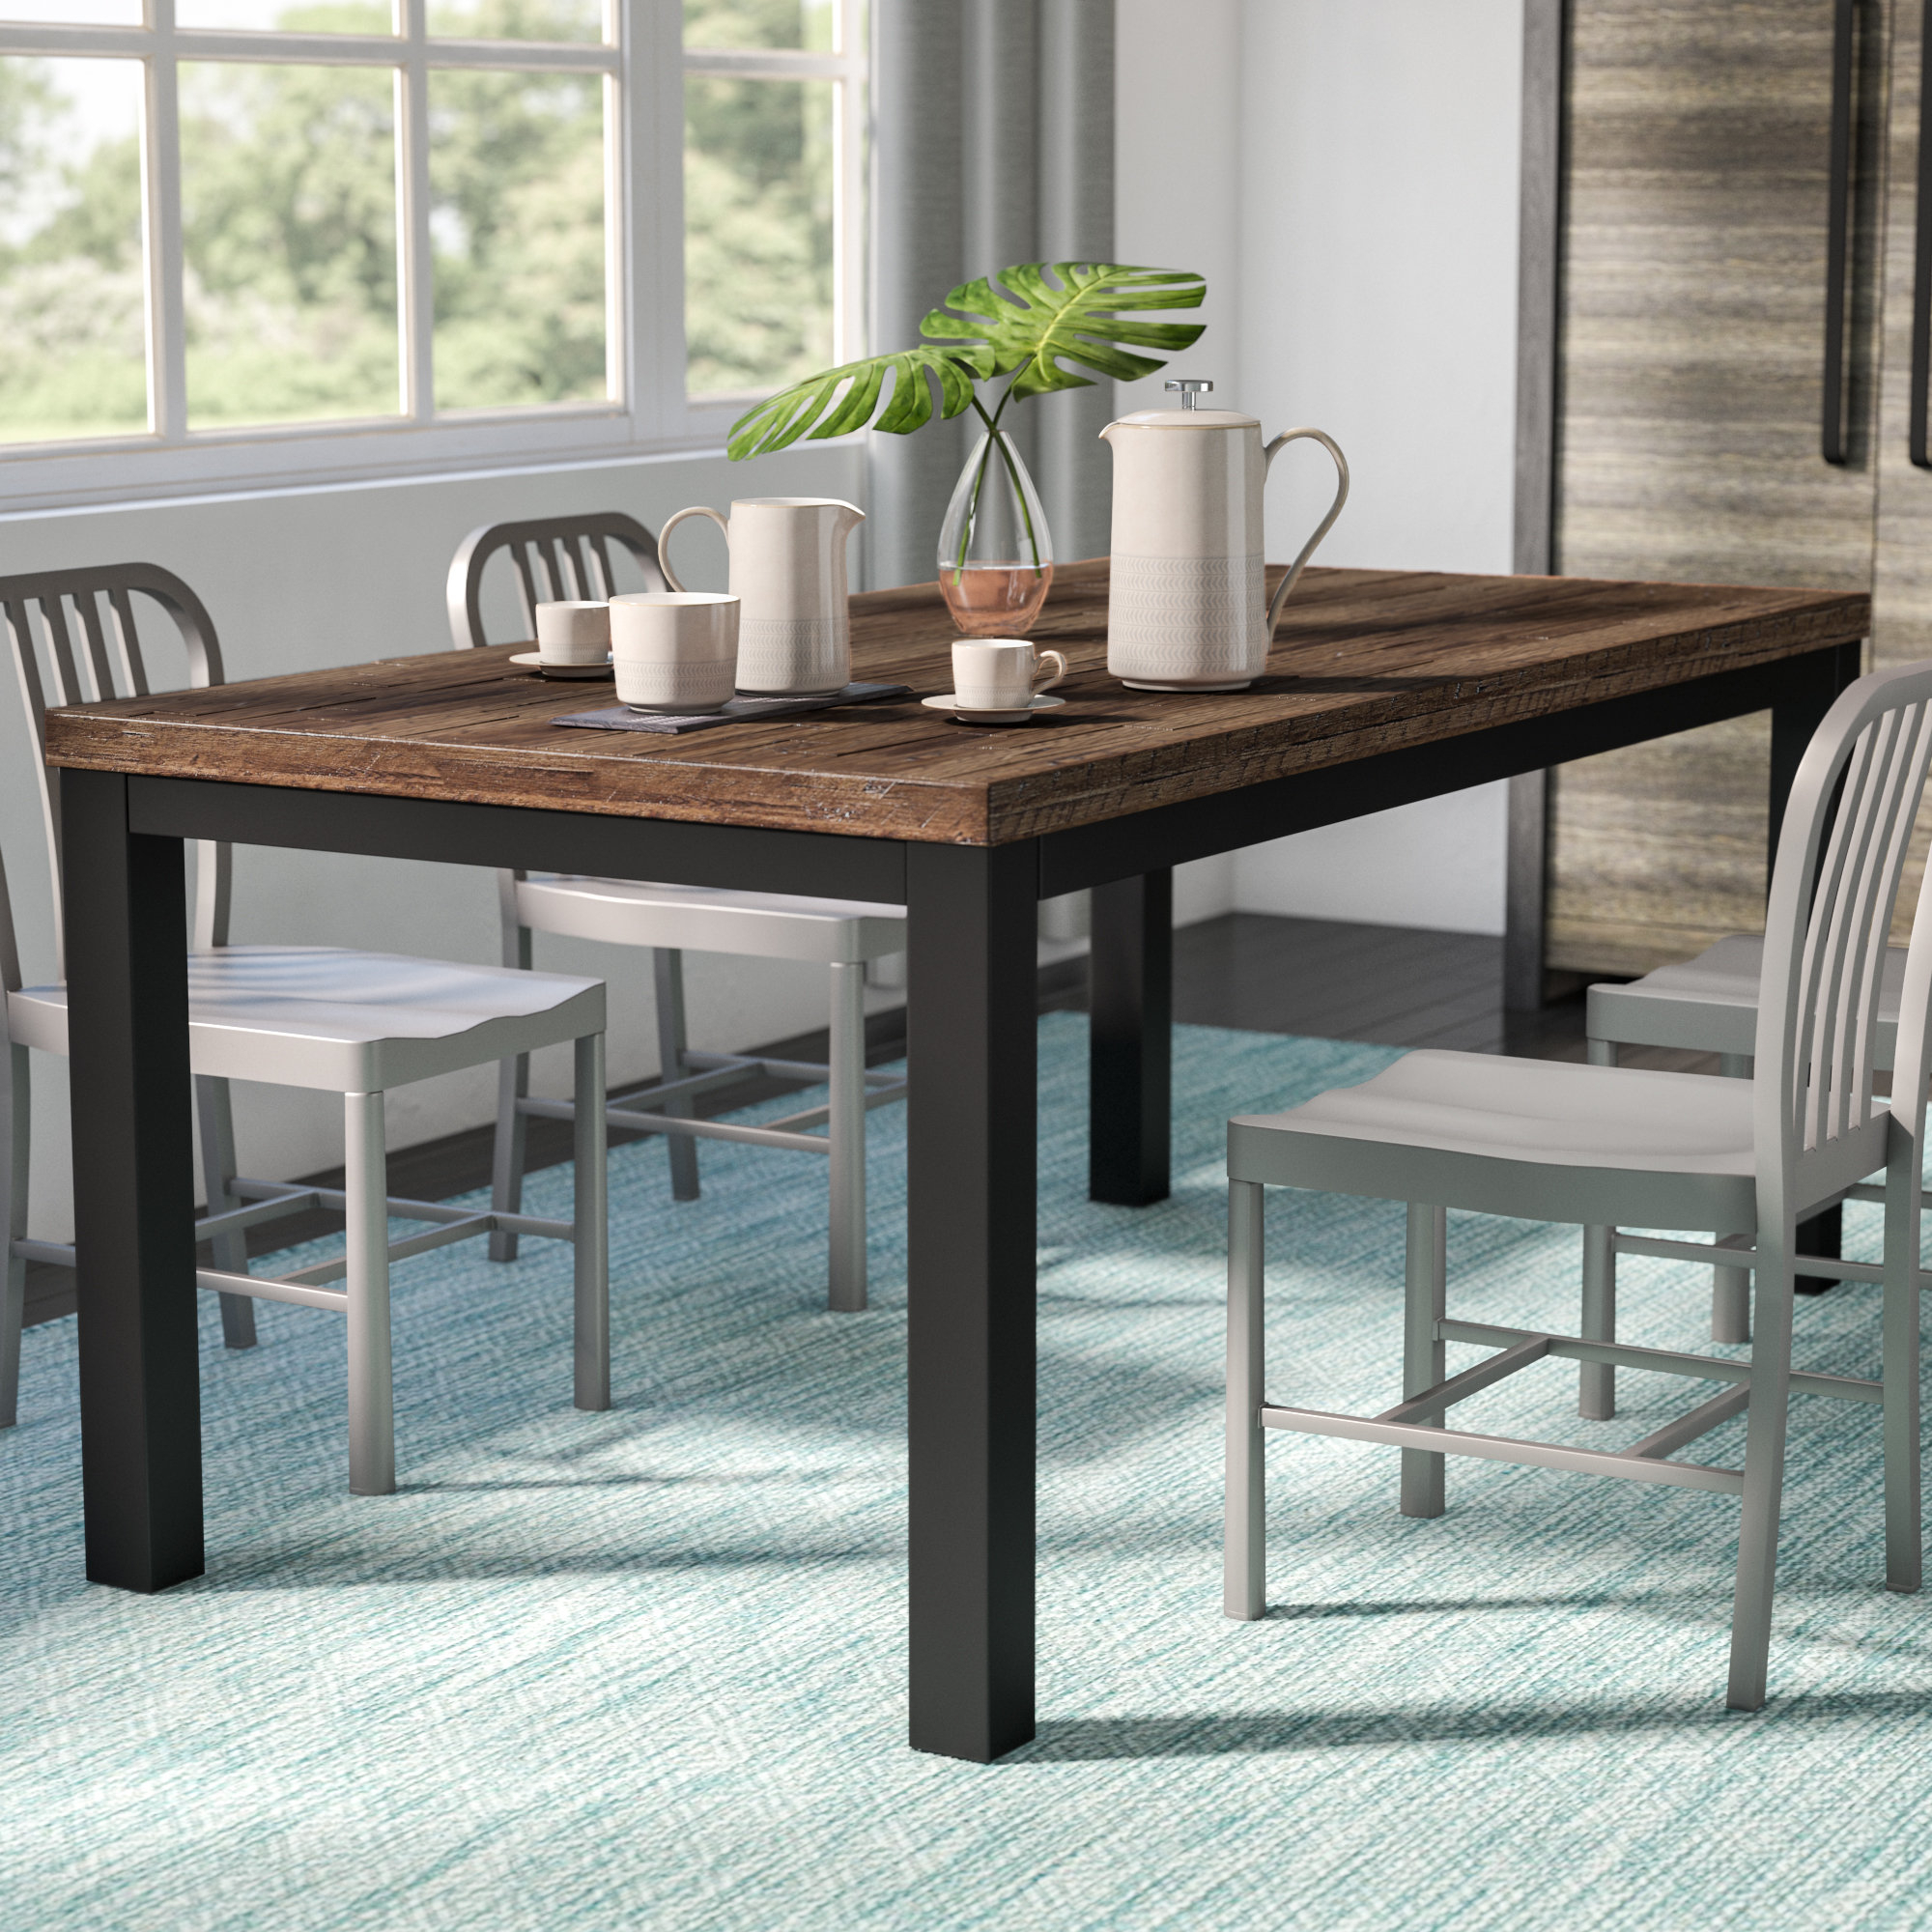 Most Recent Langley 5 Piece Dining Set Intended For Pattonsburg 5 Piece Dining Sets (View 3 of 20)